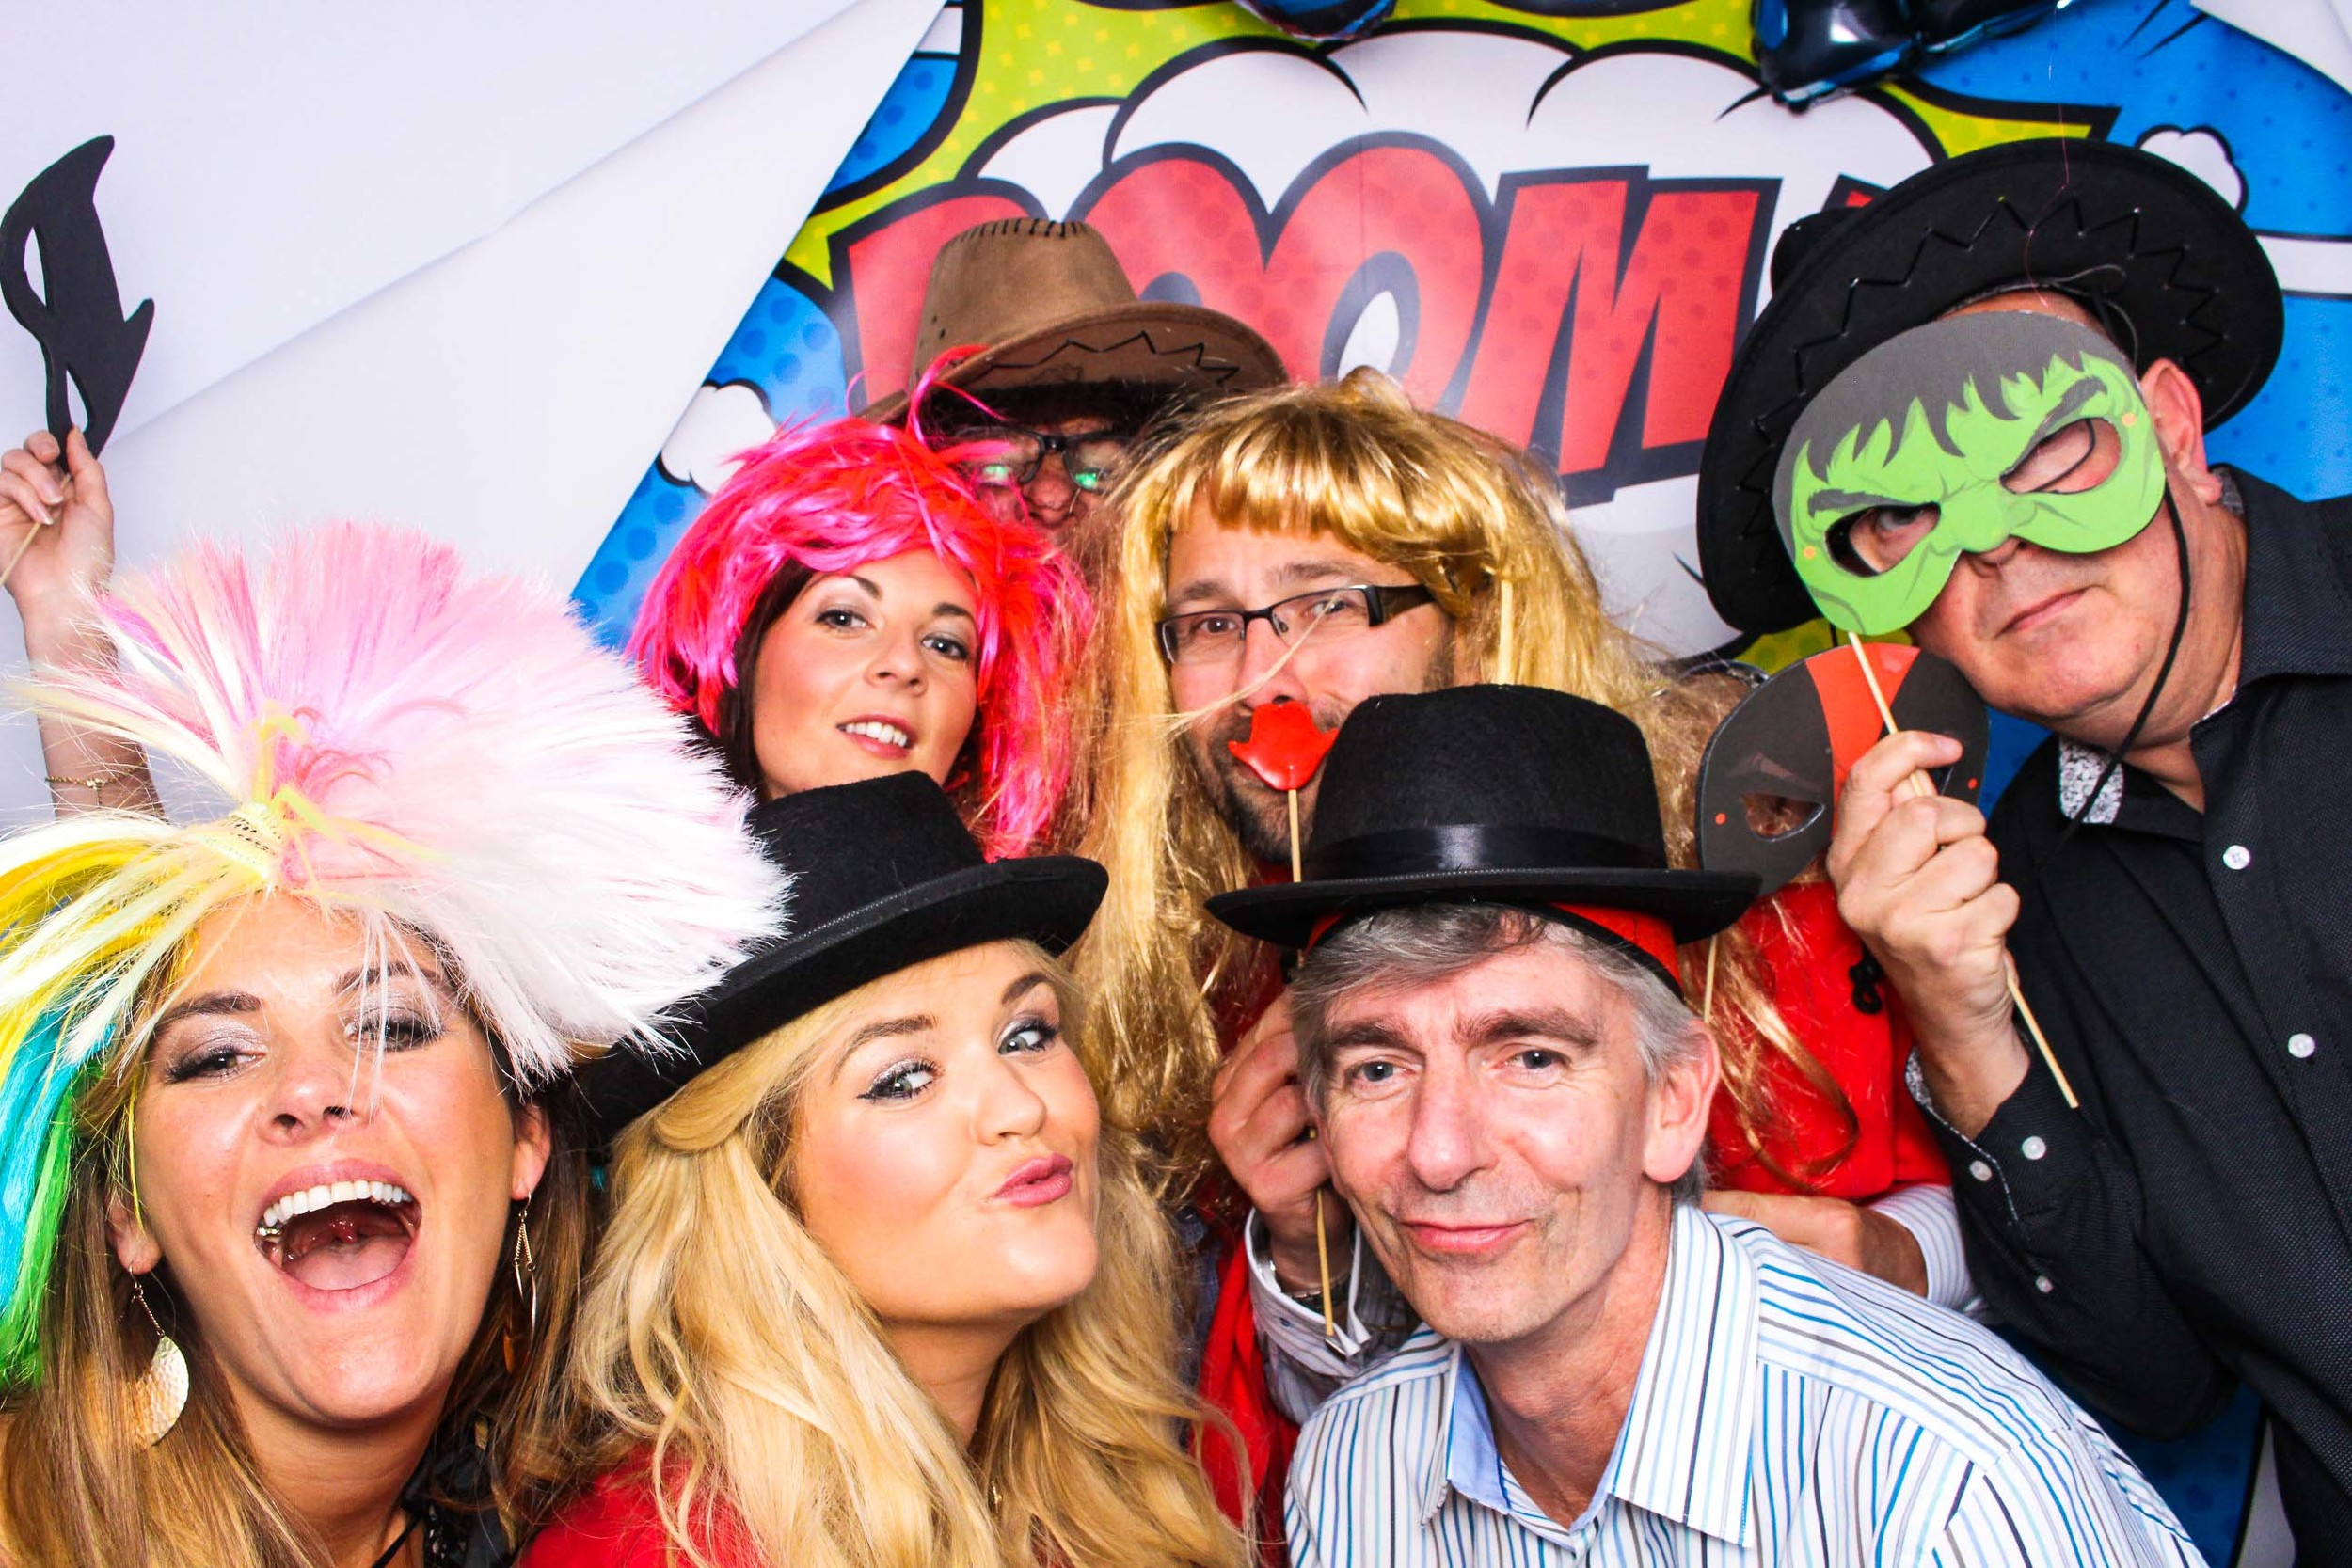 Fotoauto Photo Booth Hire - Shop Direct-155.jpg